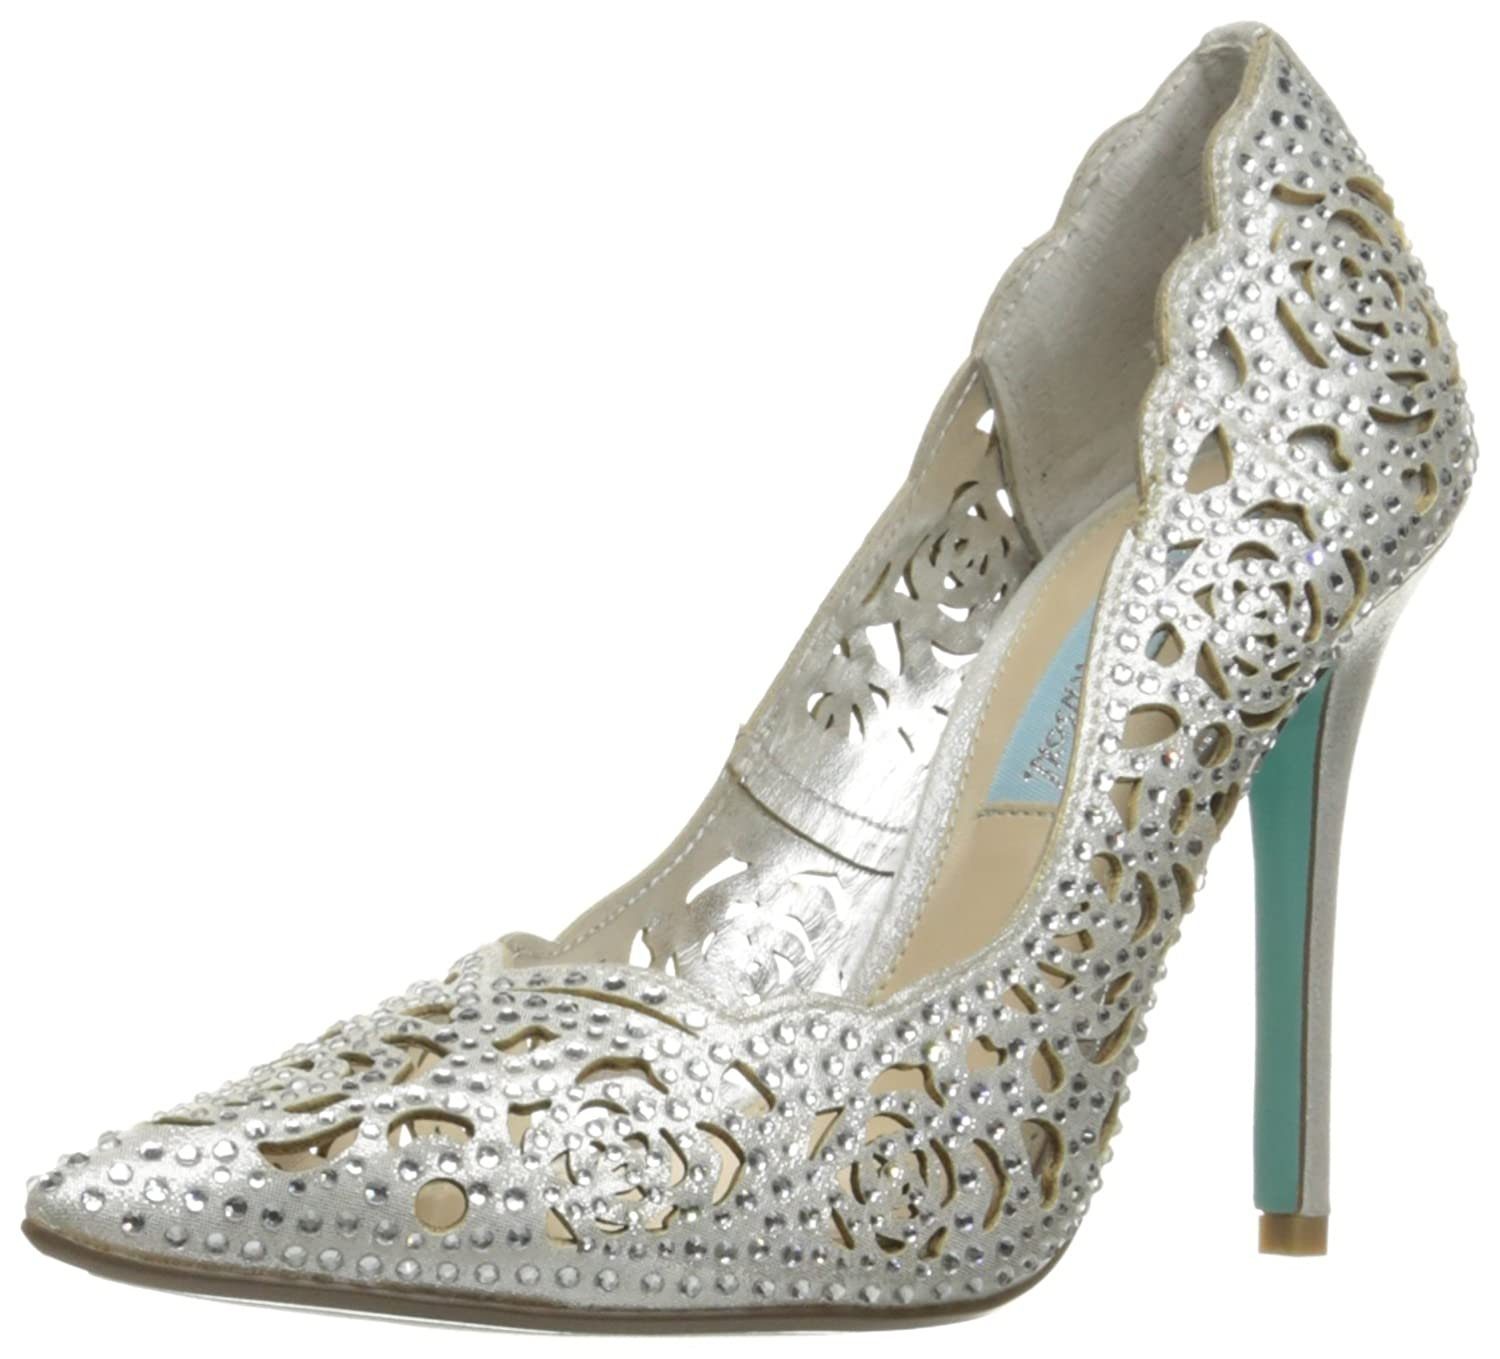 Blue by Betsey Johnson Women's Sb-Elsa Dress Pump B011PM8YWC 12 B(M) US|Silver Fabric